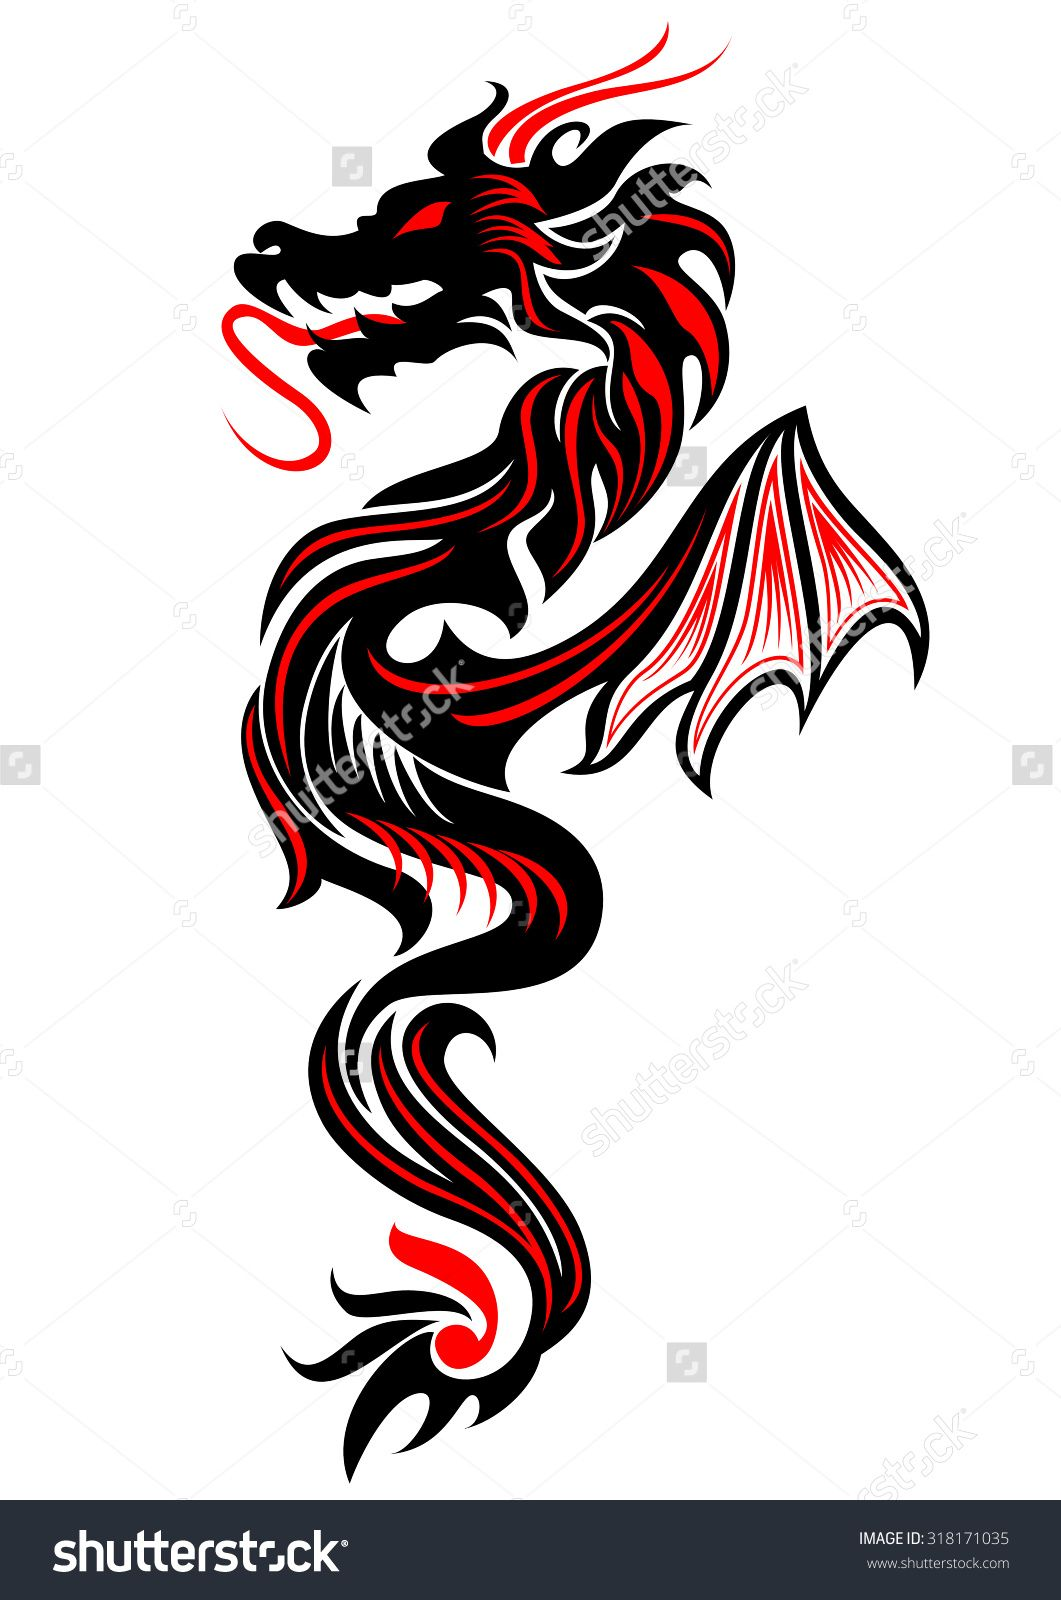 Black And Red Tribal Dragon Tattoo Vector Illustration Dragon Tattoos For Men Dragon Tattoo Vector Red Dragon Tattoo